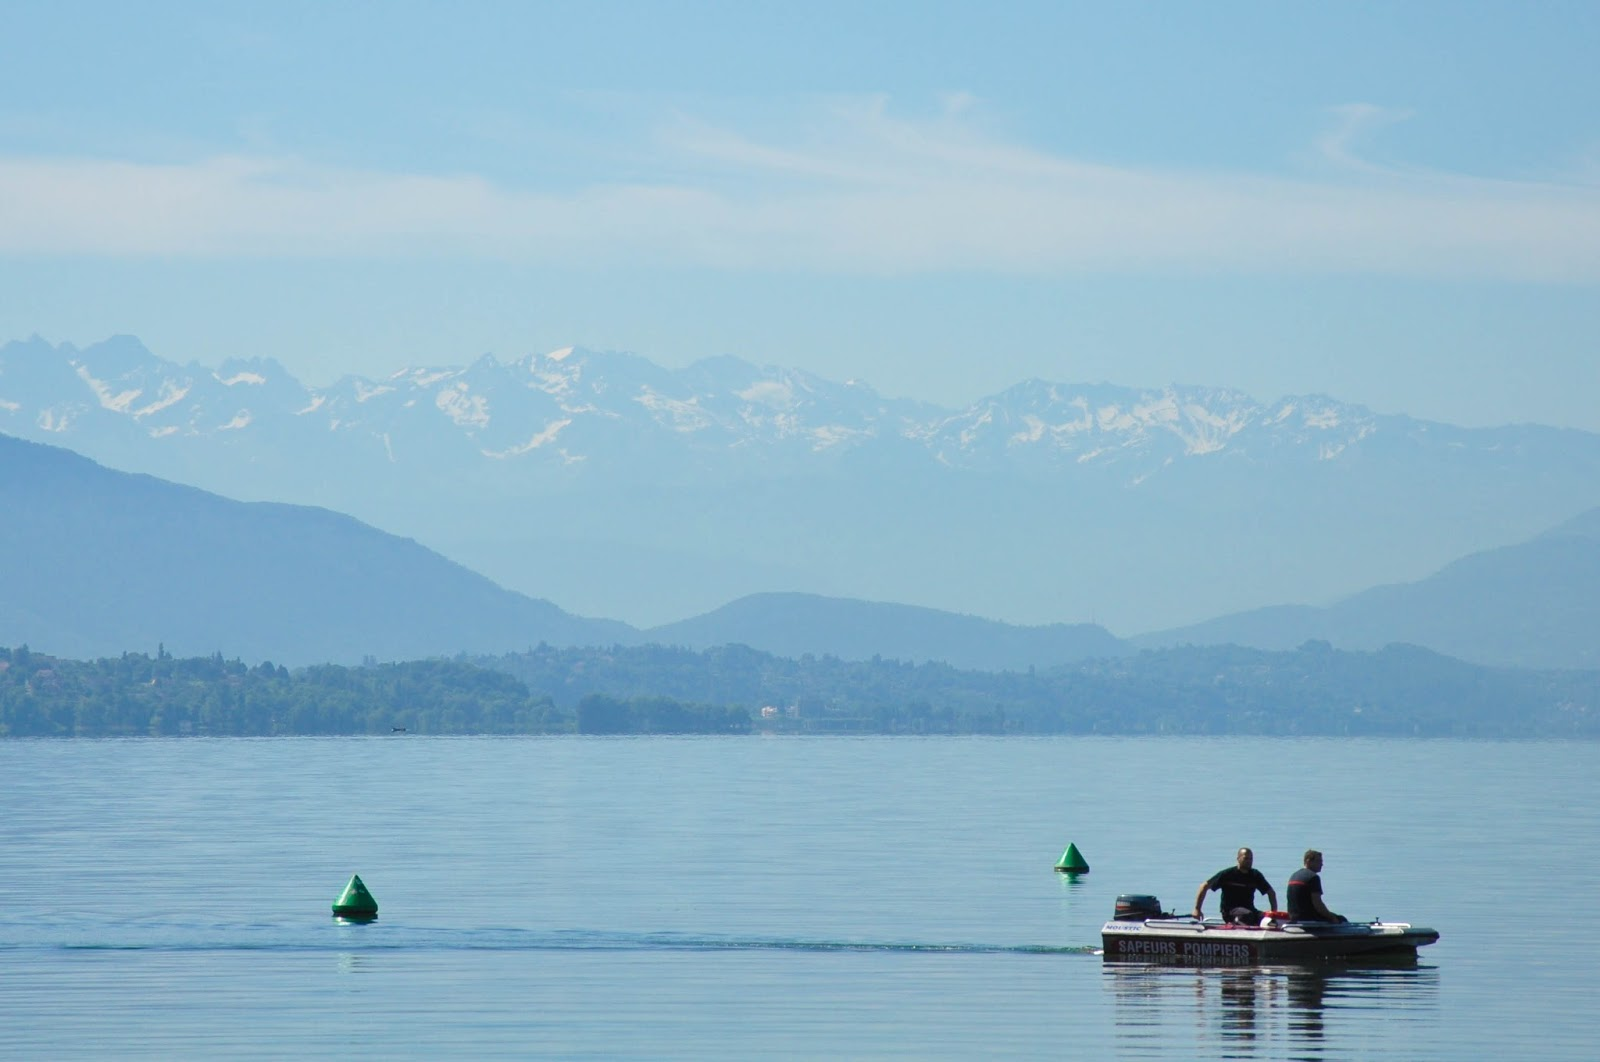 A boat gliding on Lake Bourget, France's largest lake